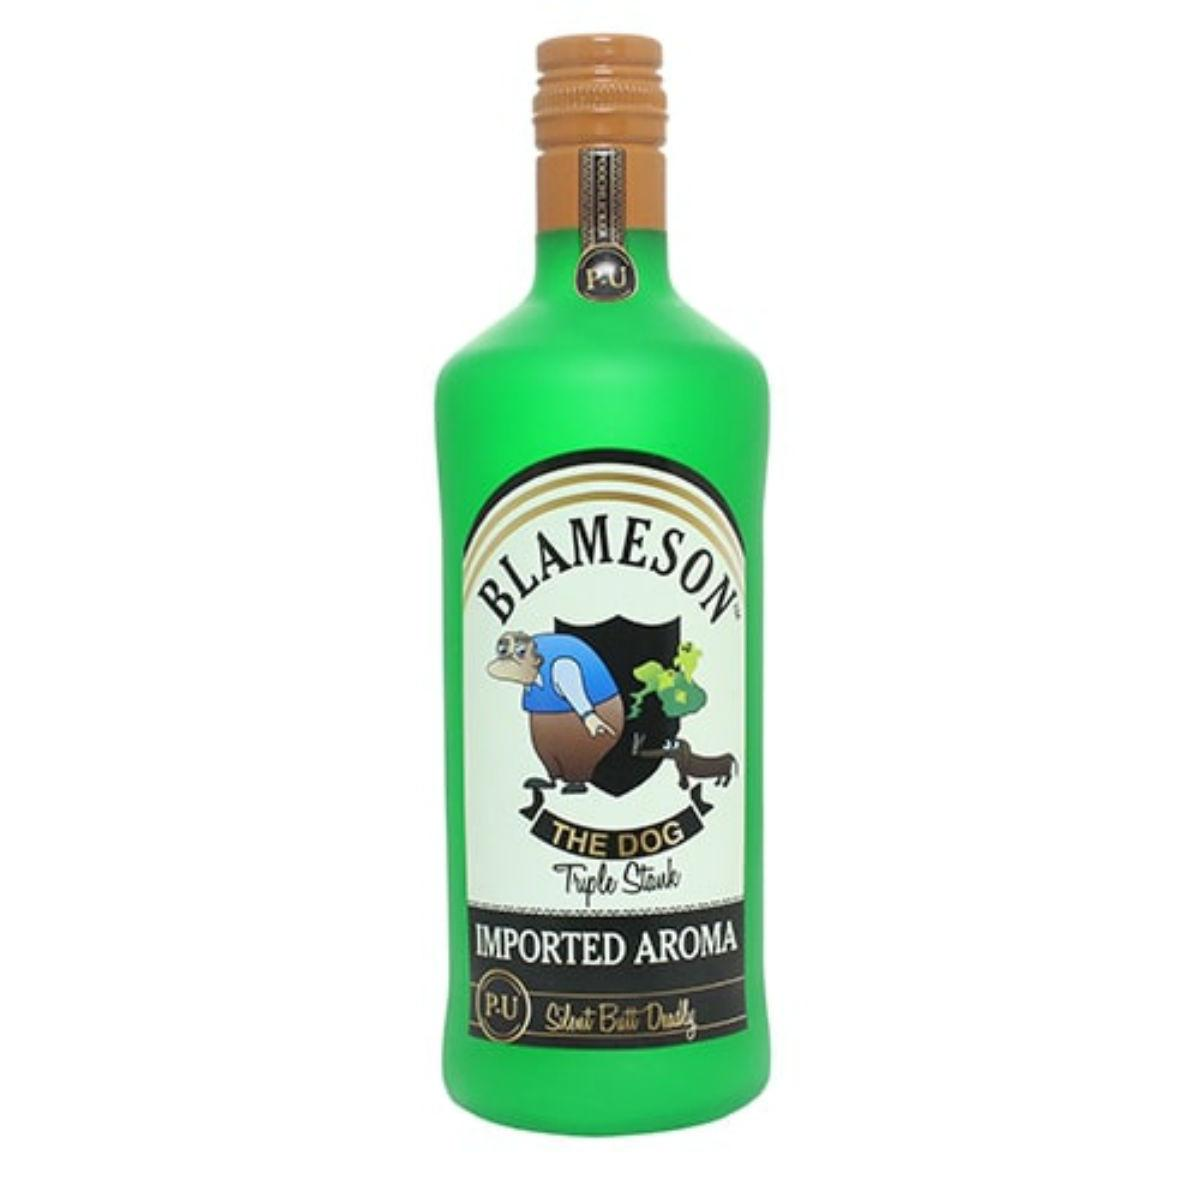 Silly Squeakers Liquor Bottle Dog Toy - Blameson